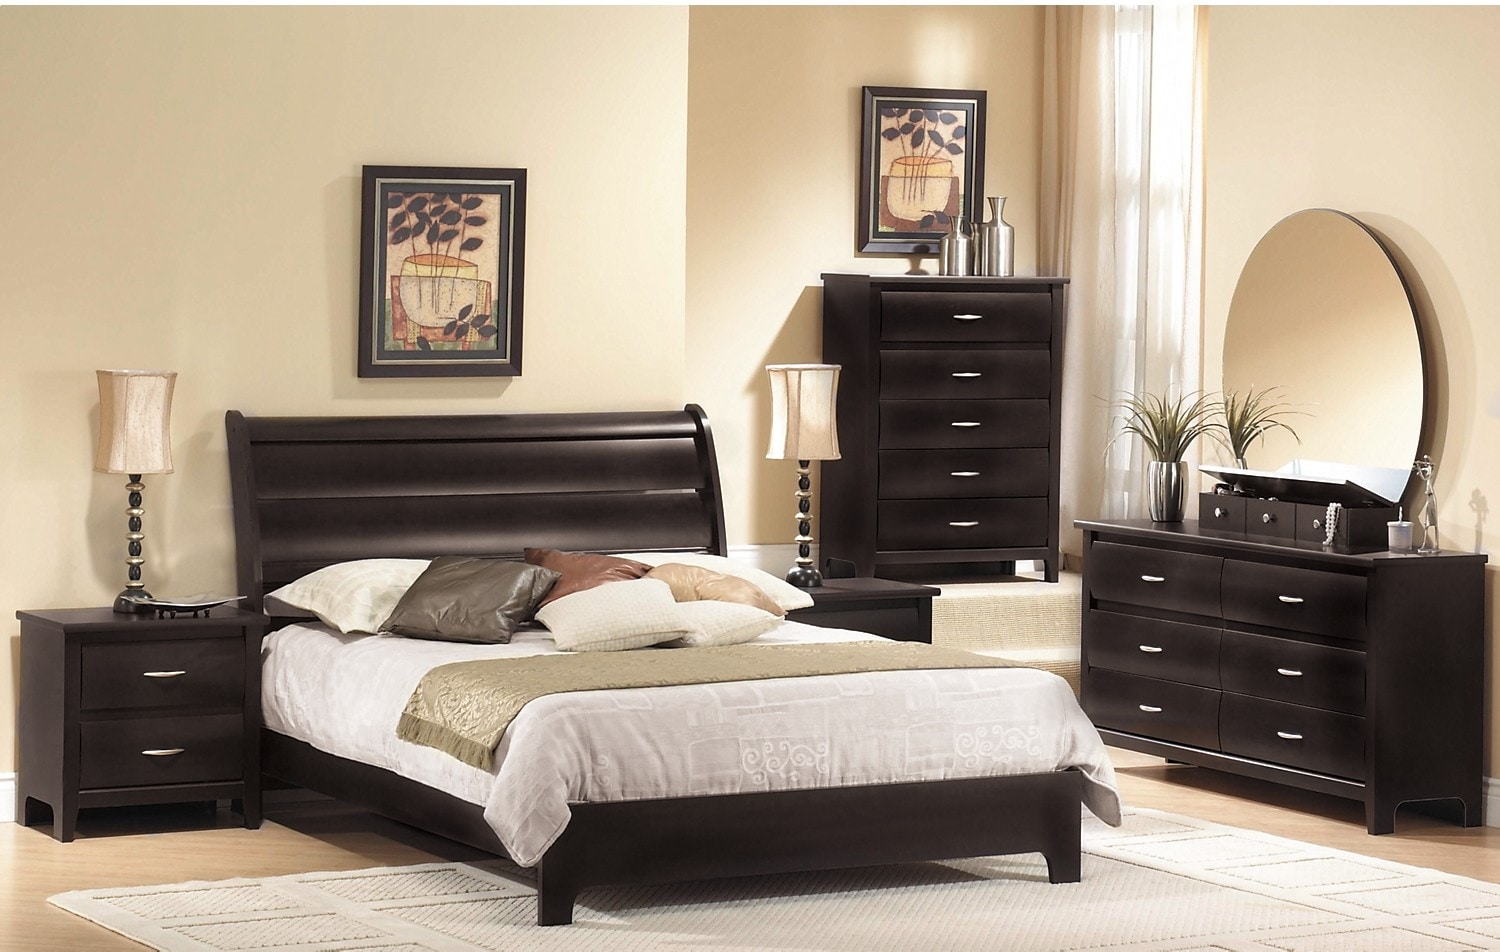 Bedroom Furniture - Mocha 8-Piece Queen Bedroom Package